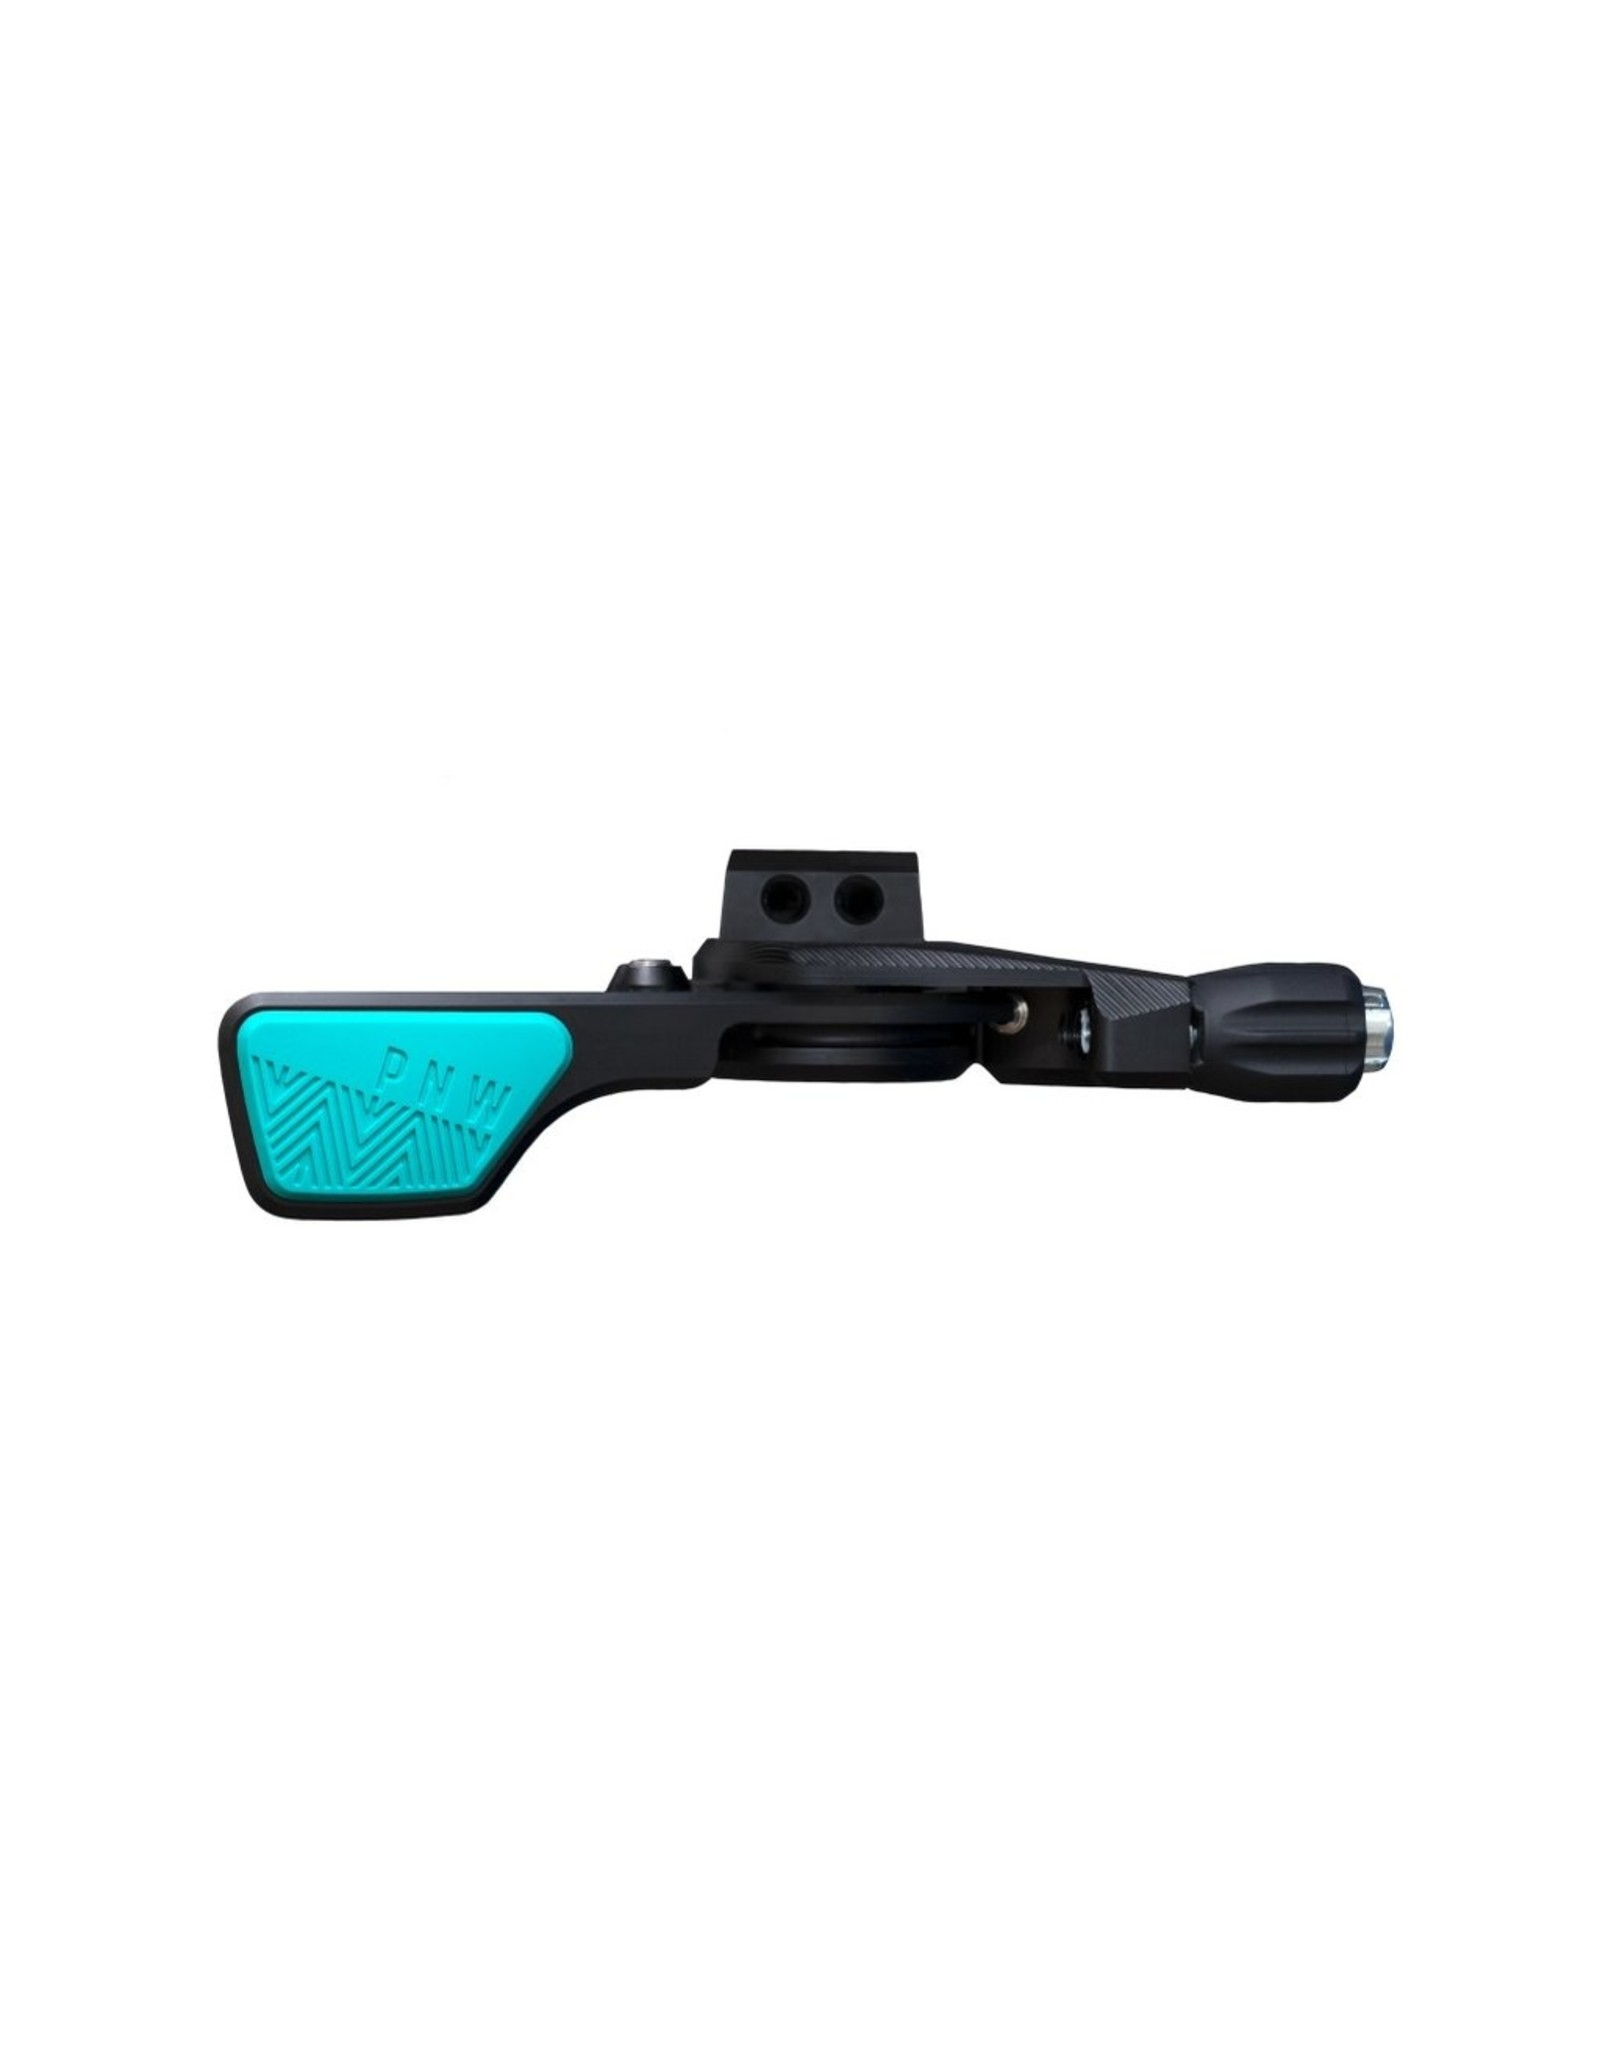 PNW Components PNW Loam Lever - 022.2 Clamp - Teal